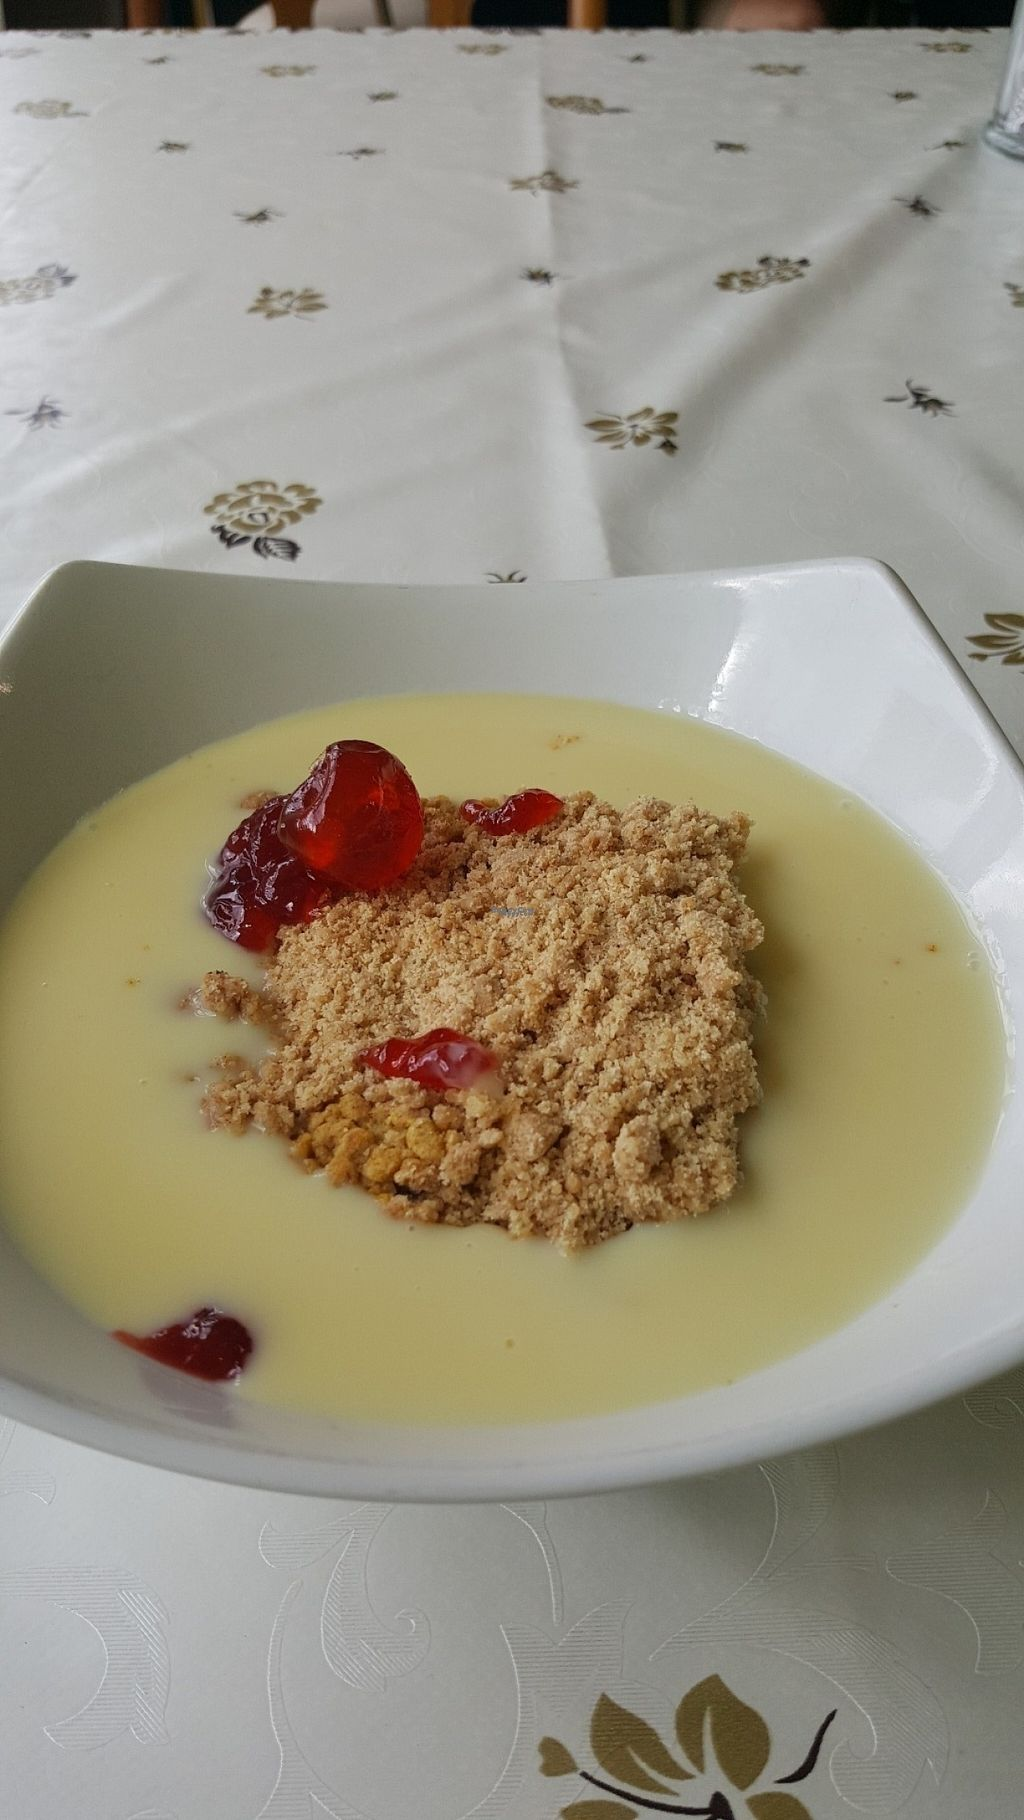 """Photo of CLOSED: LoveGift Vegan Cafe  by <a href=""""/members/profile/Clare"""">Clare</a> <br/>Pineapple crumble and custard <br/> August 10, 2016  - <a href='/contact/abuse/image/57965/167458'>Report</a>"""